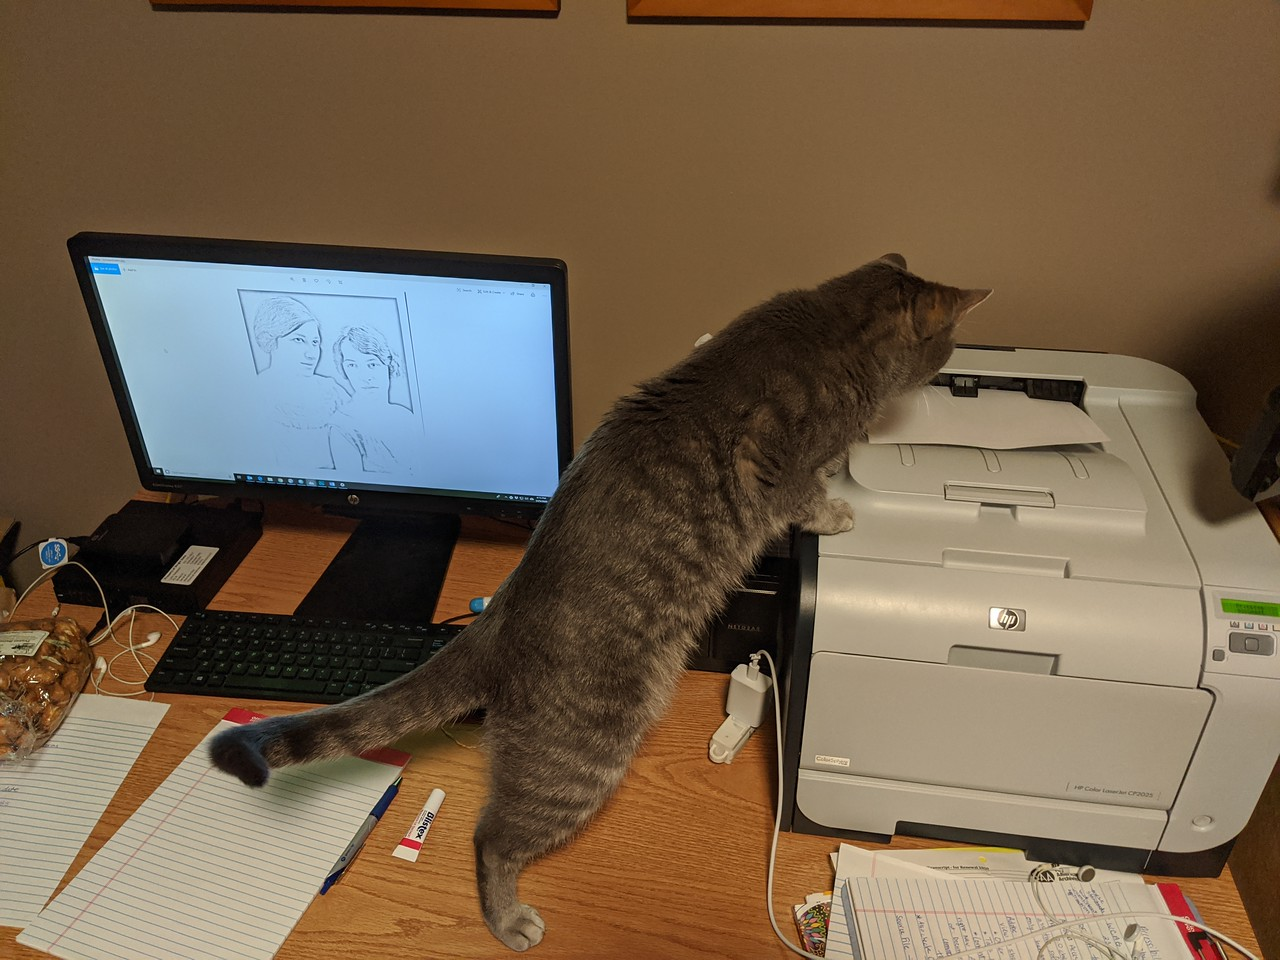 March 25 was the day I actually connected my work computer to the printer- to print a coloring sheet I had created from one of our archives photos.